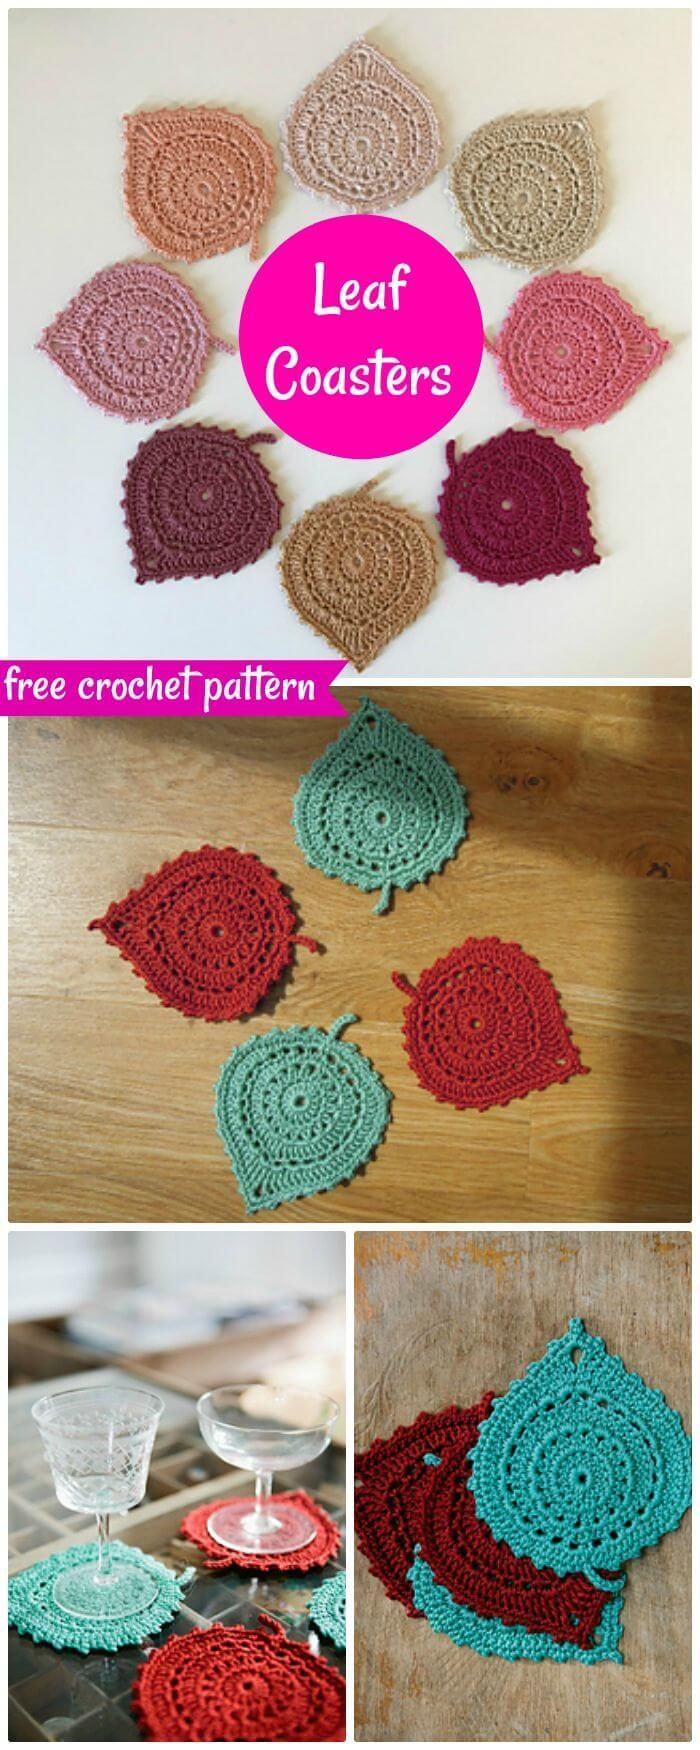 70 Easy Free Crochet Coaster Patterns For Beginners Page 6 Of 14